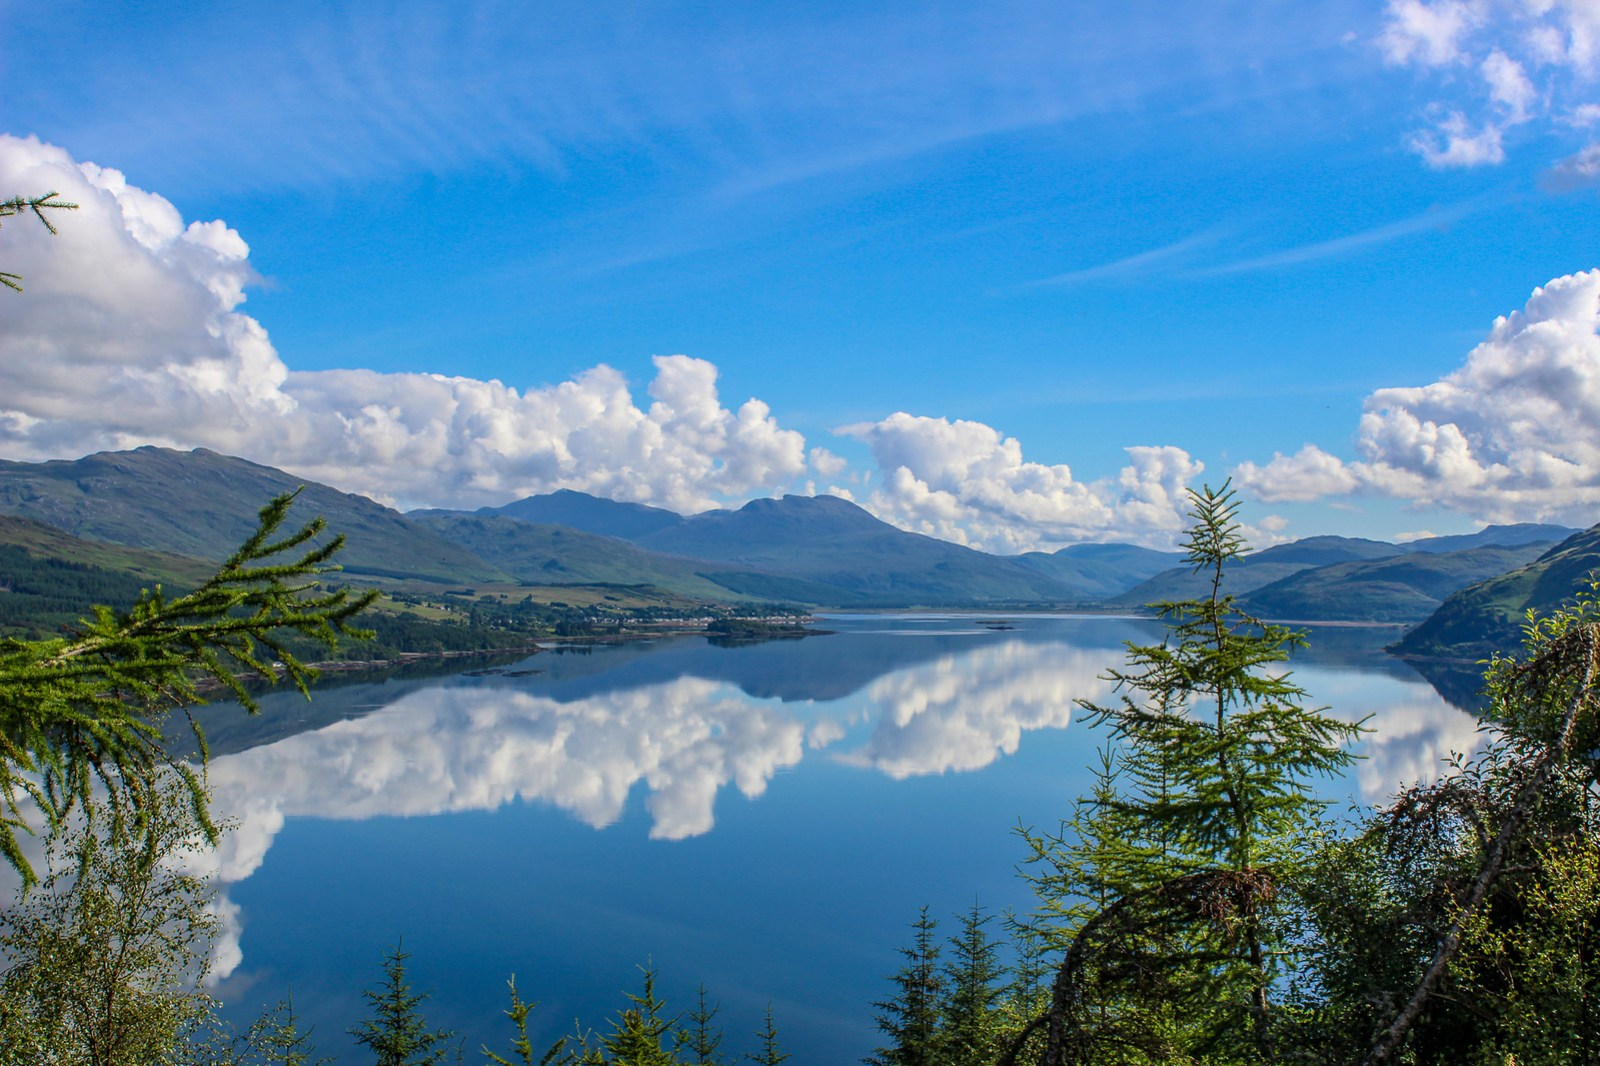 traveling to scotland will take you to some gorgeous lochs